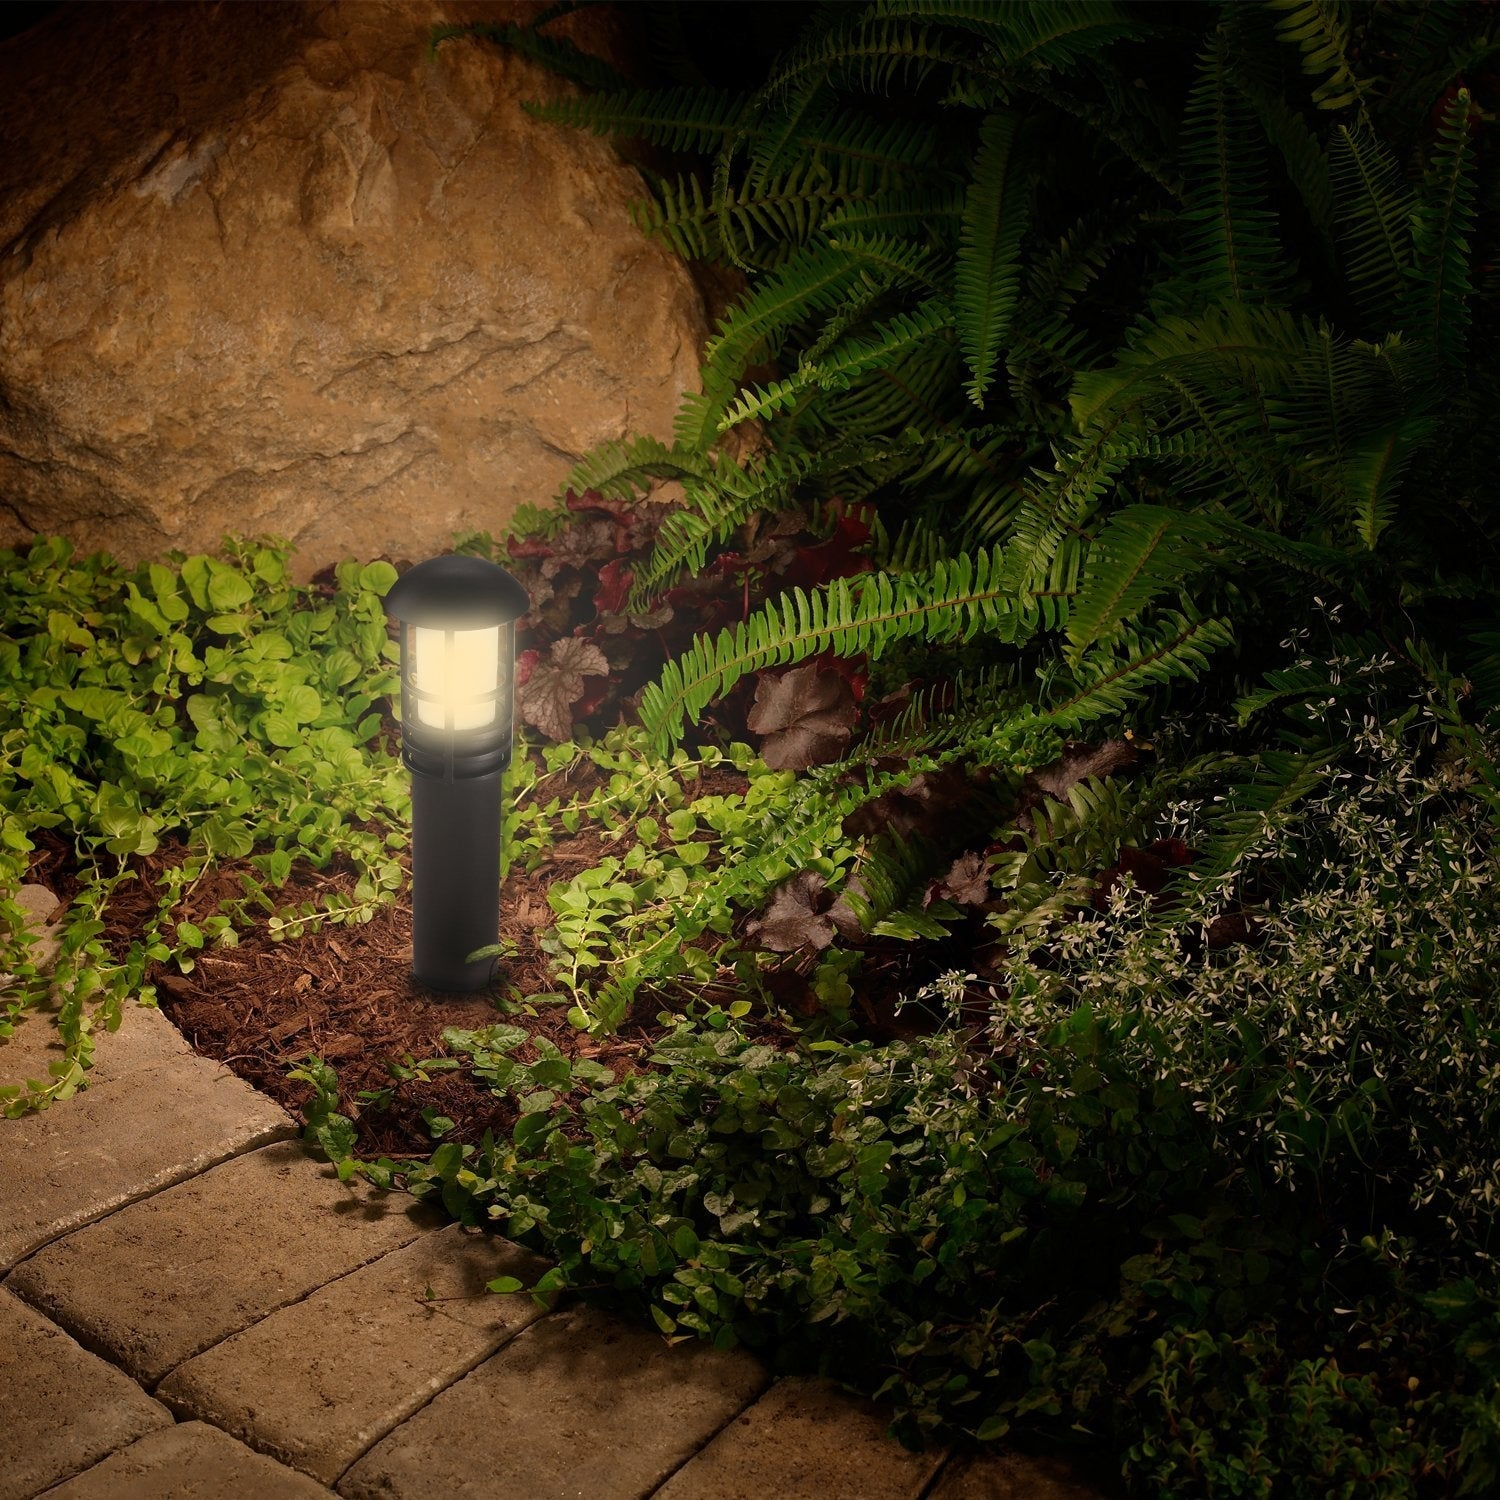 Shop LEONLITE LED Landscape Light, Waterproof, 3W, 3000K Warm White - Free  Shipping On Orders Over $45 - Overstock.com - 18087197 - Shop LEONLITE LED Landscape Light, Waterproof, 3W, 3000K Warm White